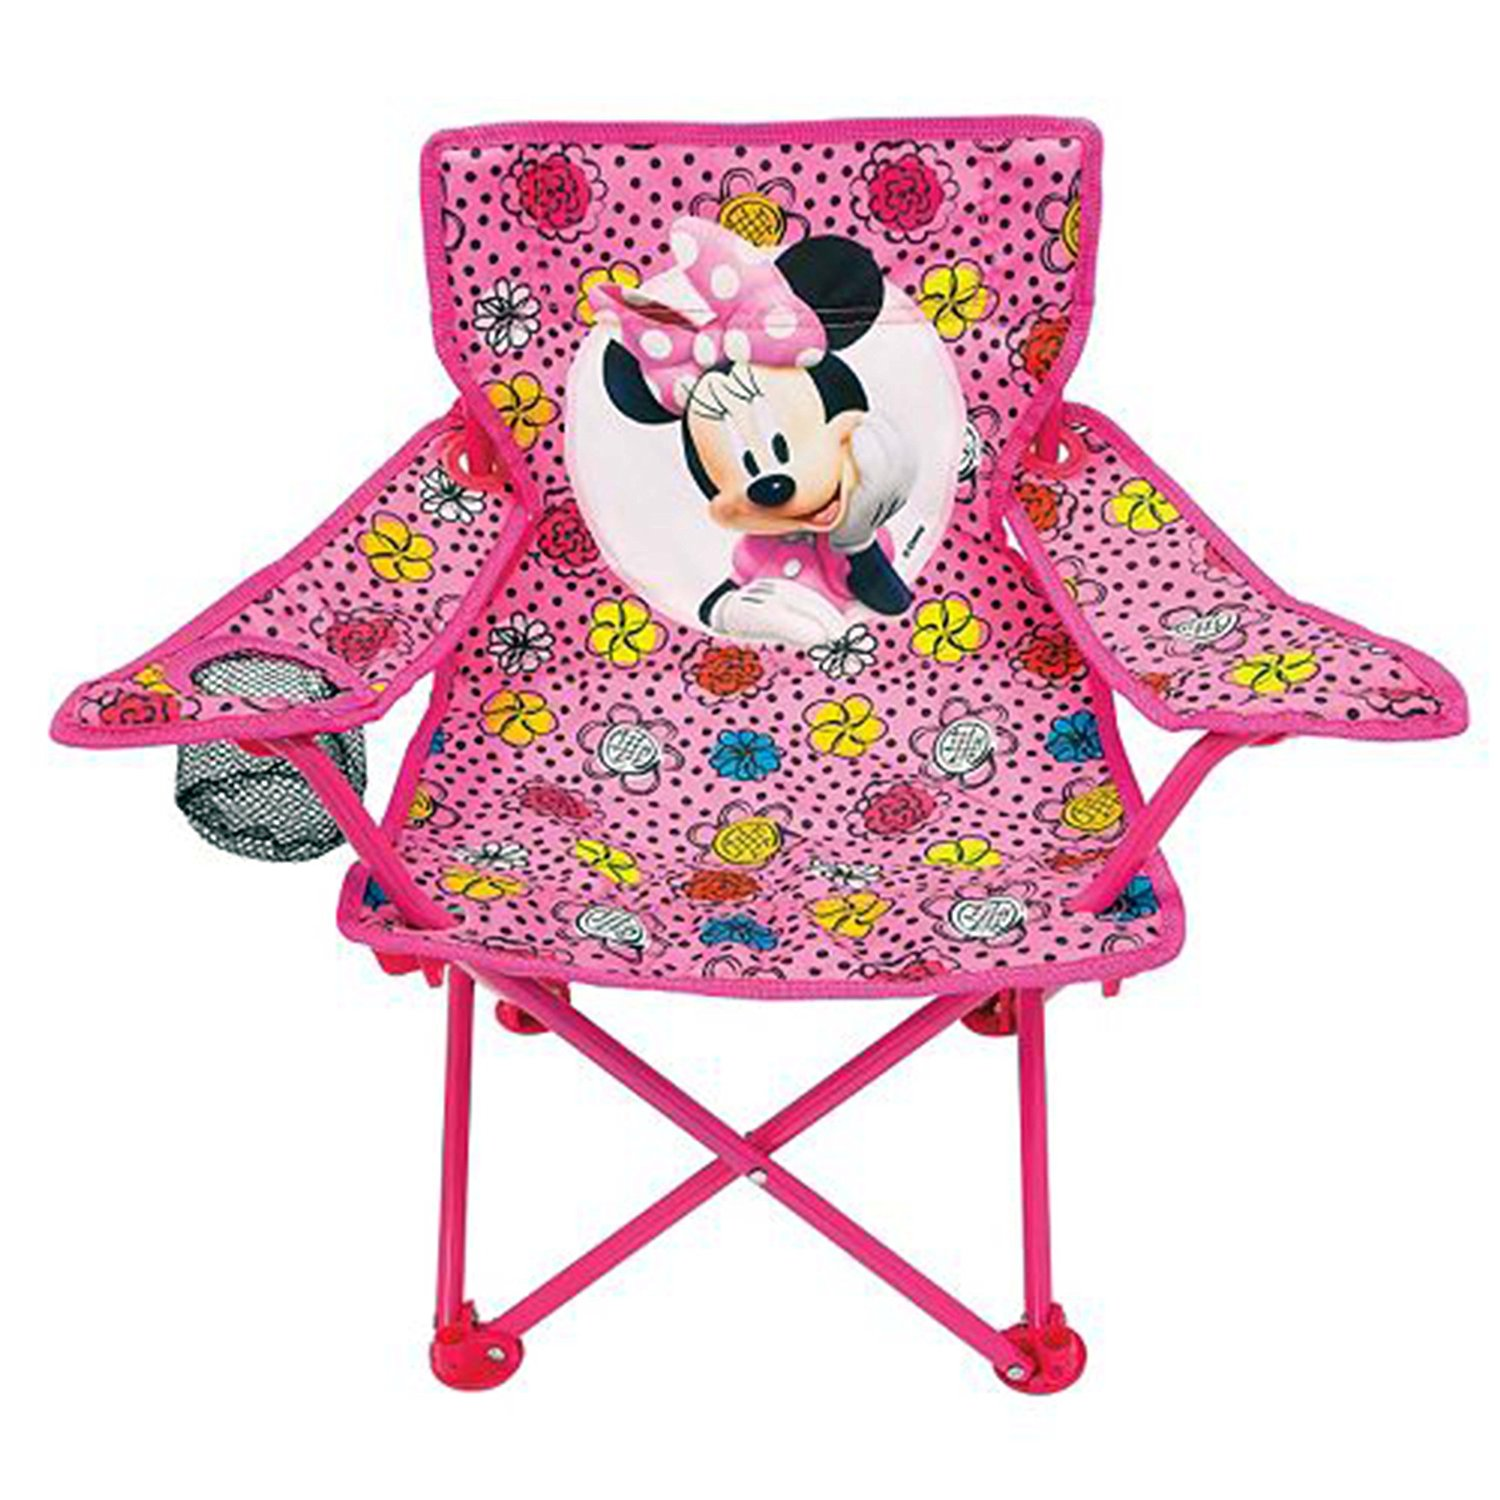 Disney's Minnie Mouse Fold N' Go Foldable Chair - Bright Pink With Flowers And Picture of Minnie Mouse